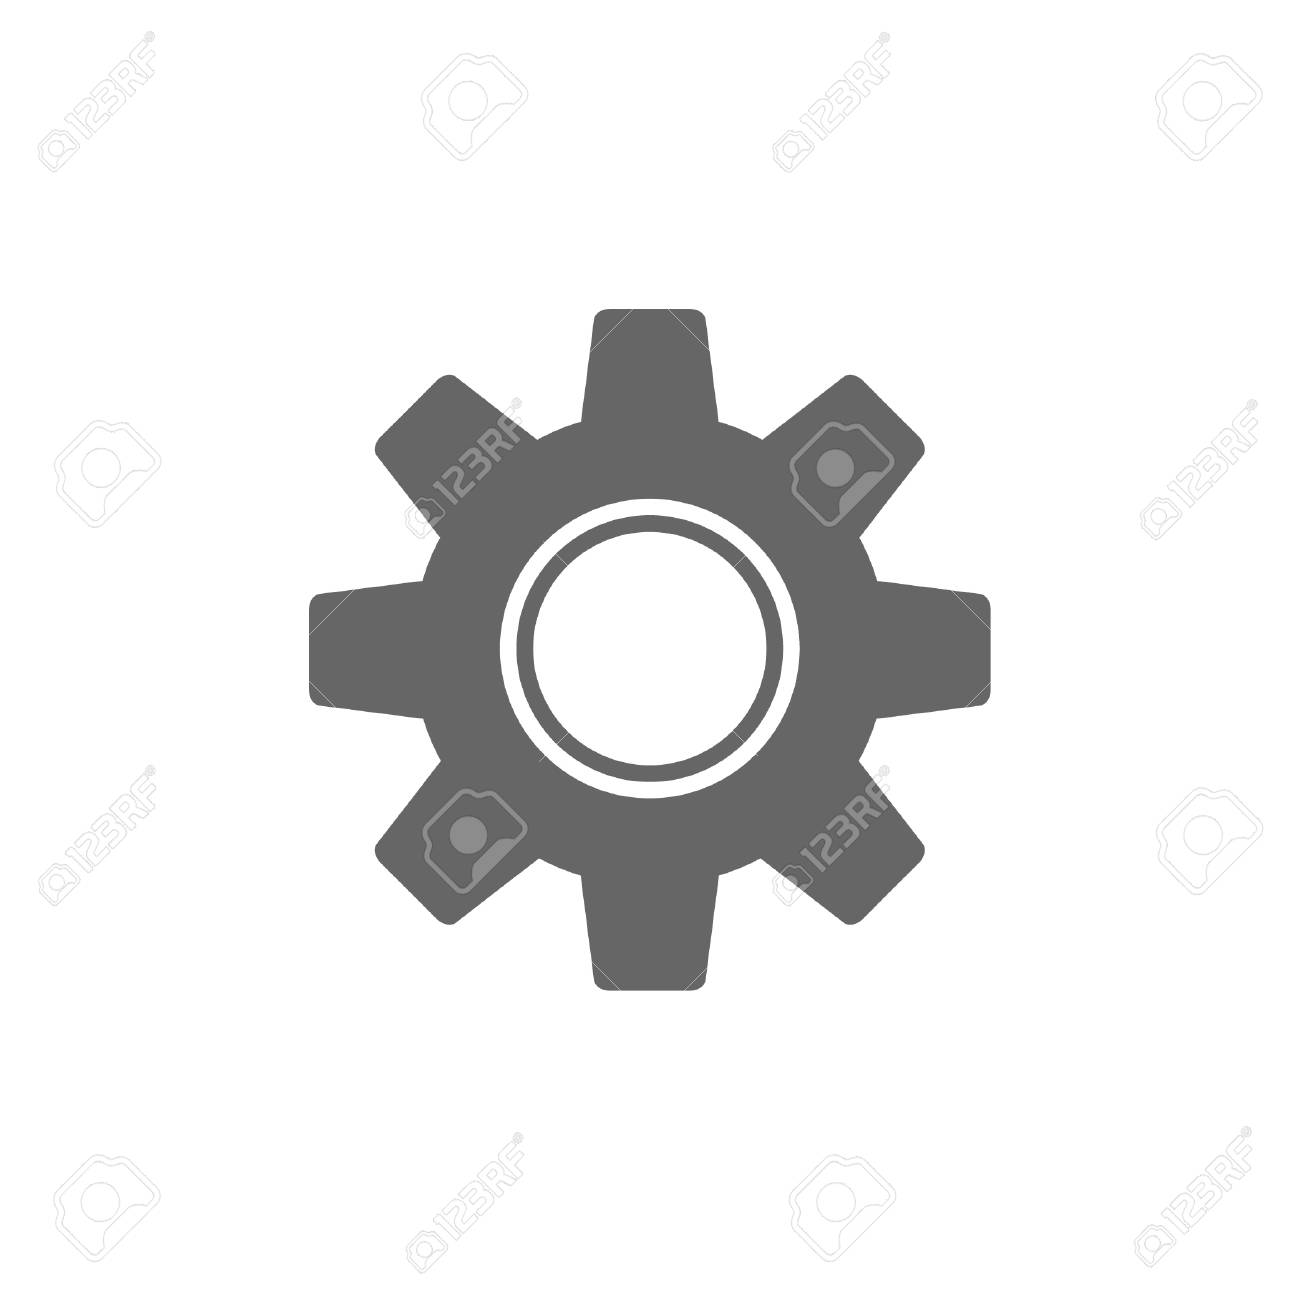 Gear vector icon, settings symbol